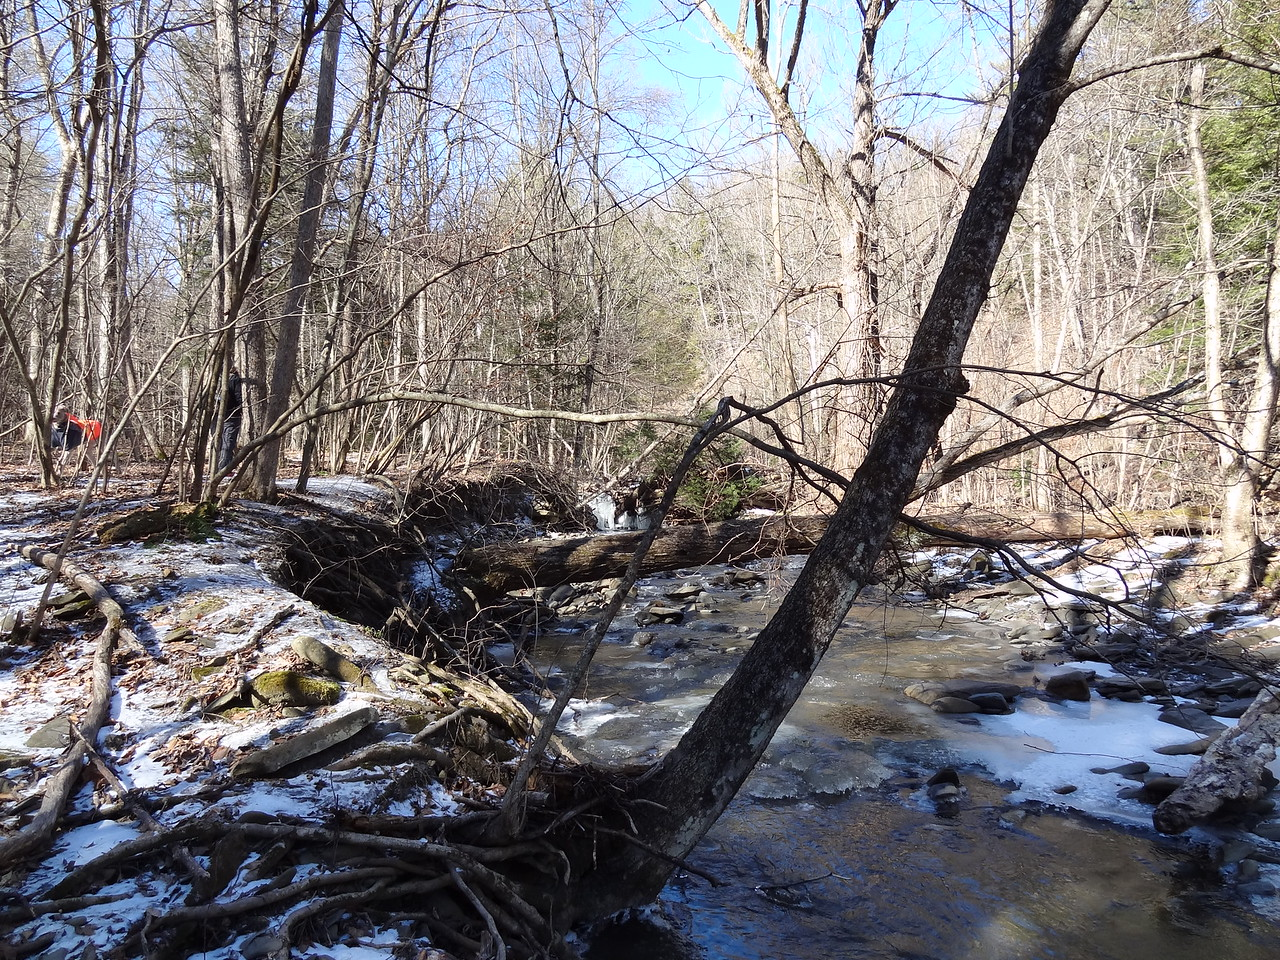 Off the Coplon Road trailhead, we made our way down to the creek. We were a little nervous choosing a crossing as it was 15°F but the water was rushing and the ice was not solid. We were contemplating crossing on the log when Capitano Stupido raced across the ice above the deepest hole and stopped when the ice started to crack. I yelled for him to move, but I was too late. He went right through the ice with only his head showing above water. His neoprene jacket actually kept him somewhat dry but he was shivering none-the less. As such, we went back to the car and drove around a little while he dried off and warmed up. Then we went to the Main entrance on Rt 159 and tried again.